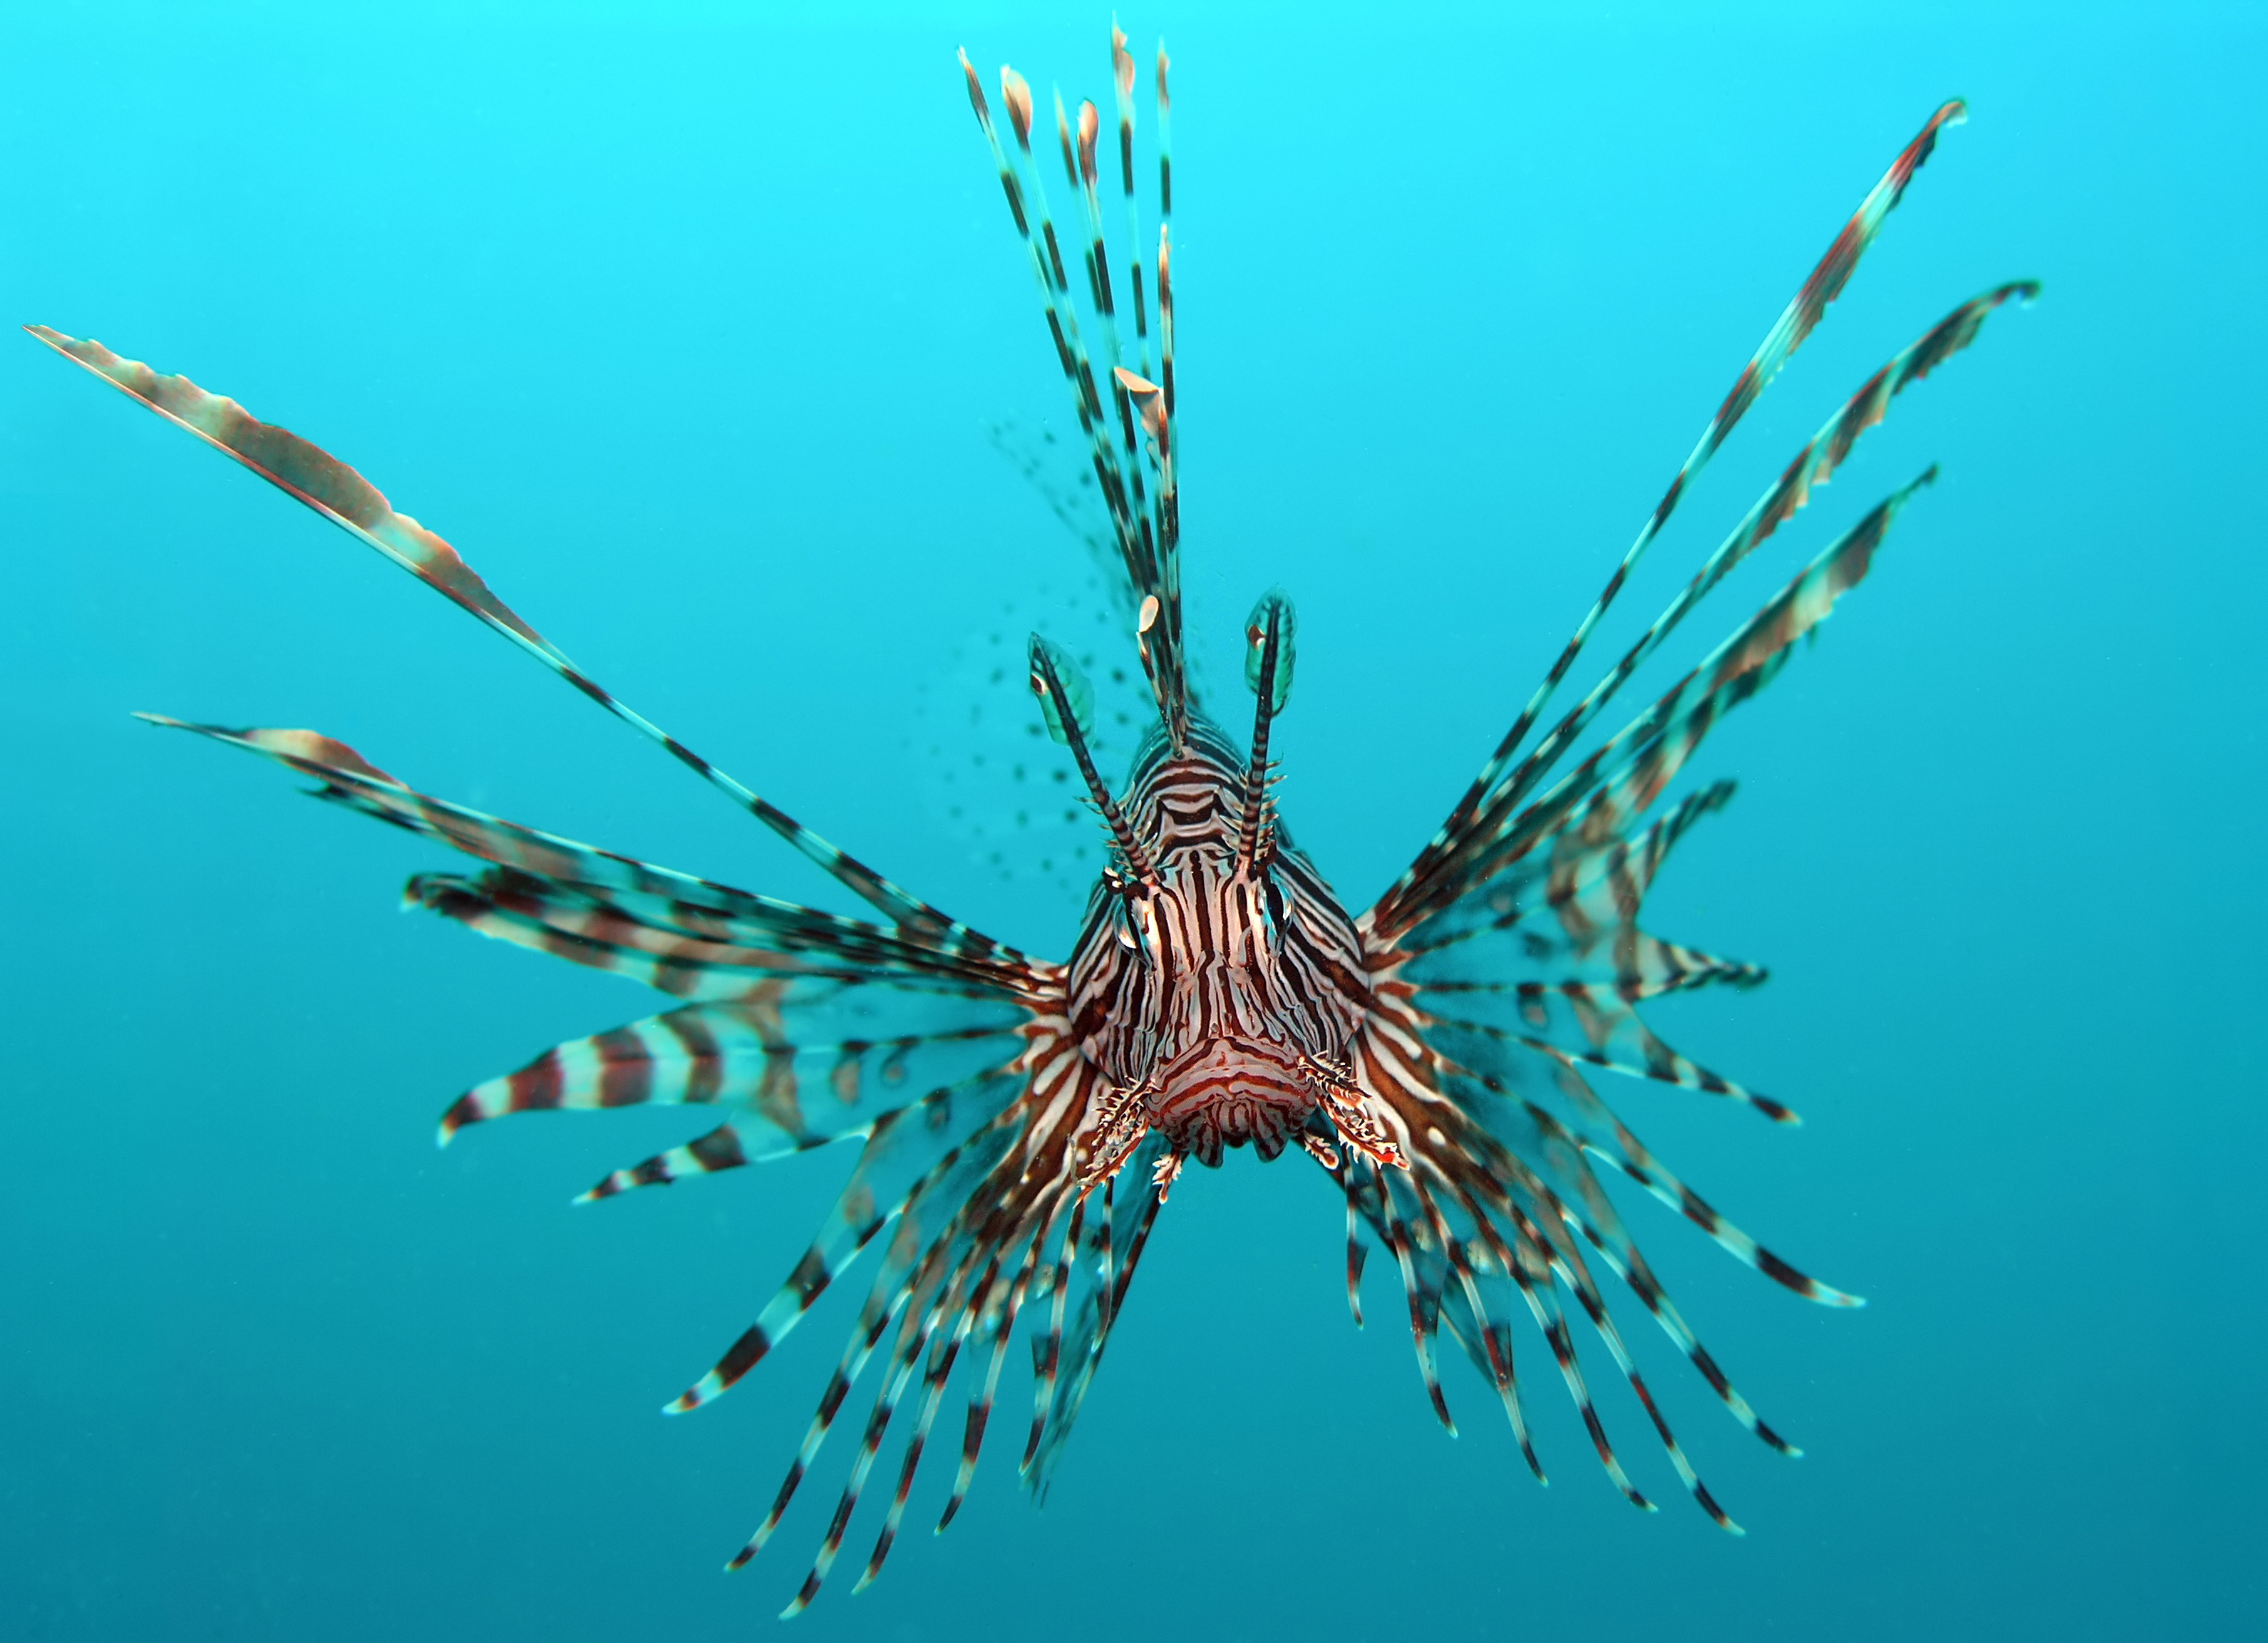 Pterois volitans by Jens Petersen, CC BY 2.5